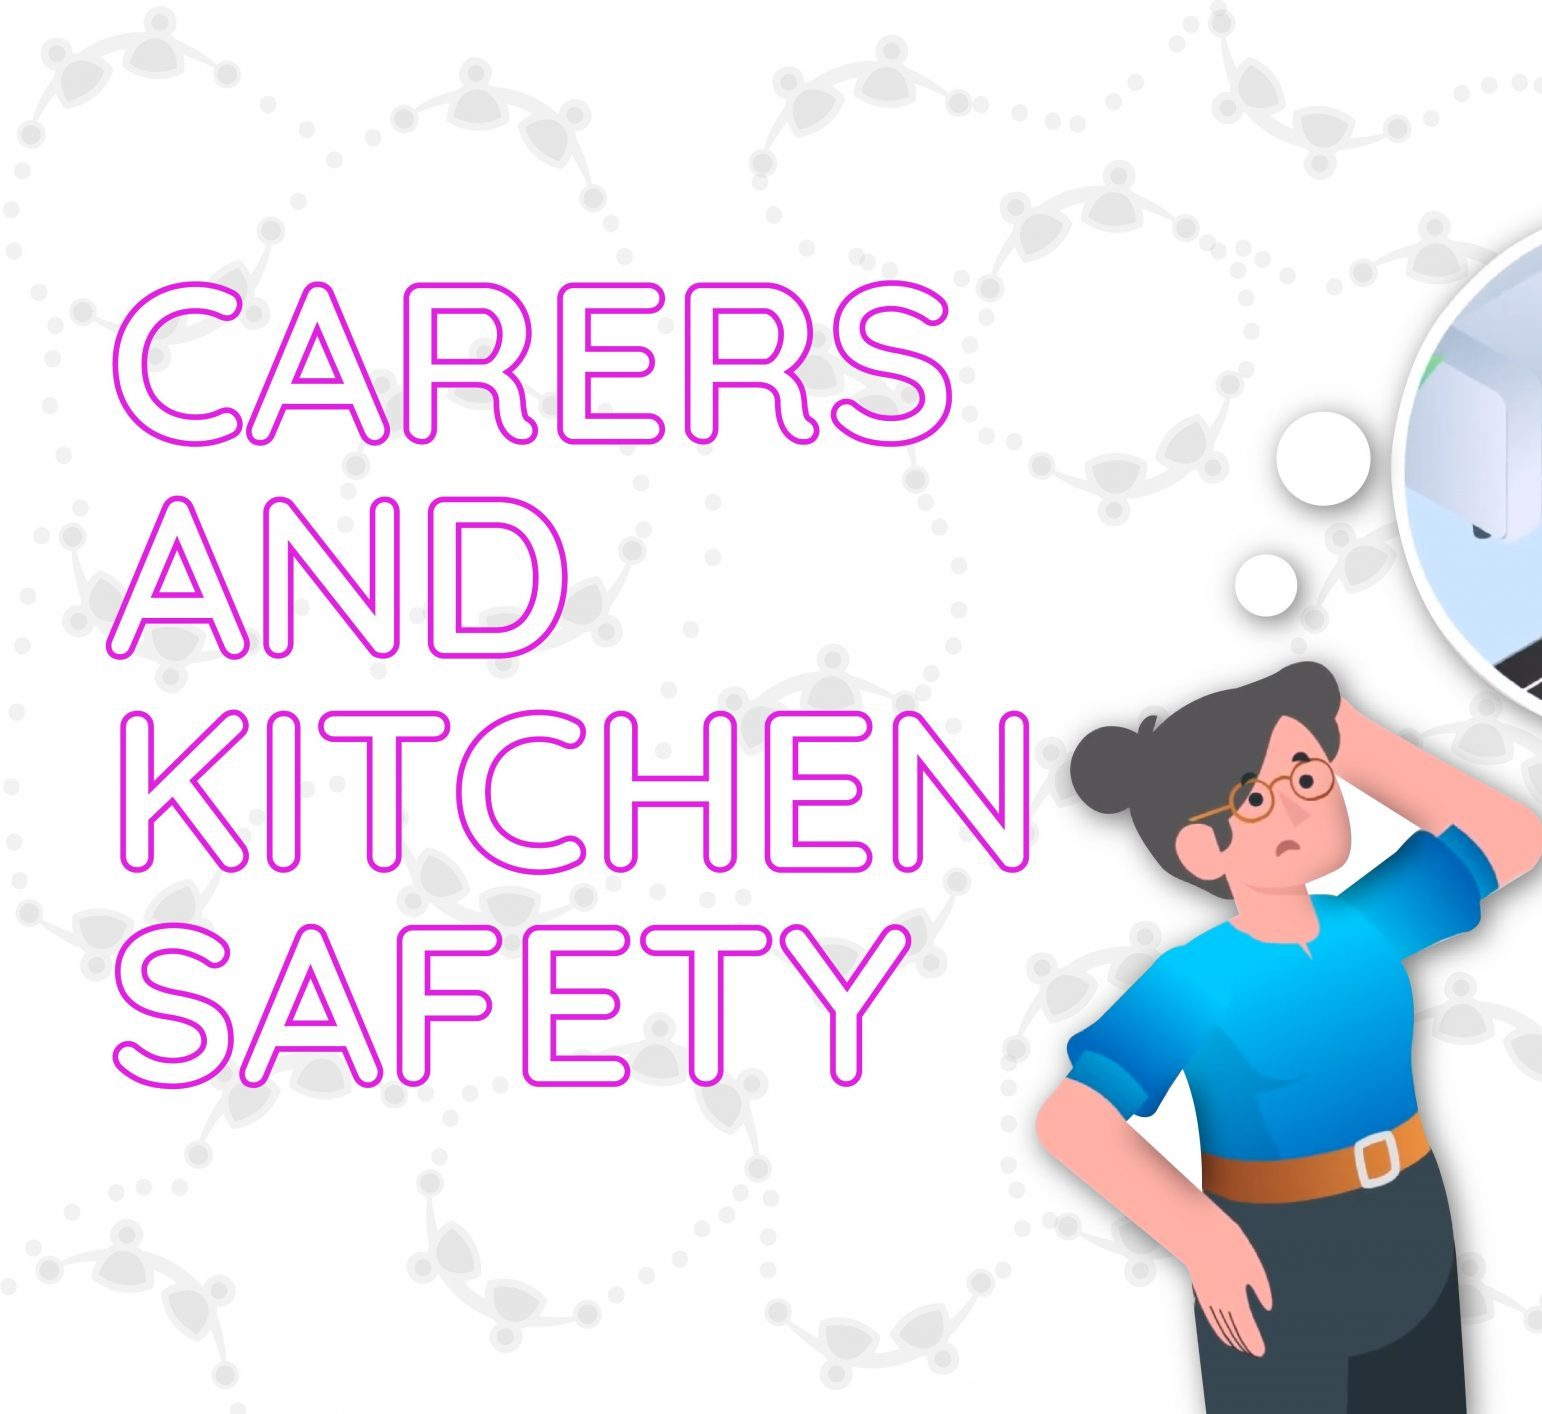 kitchen safety for carers